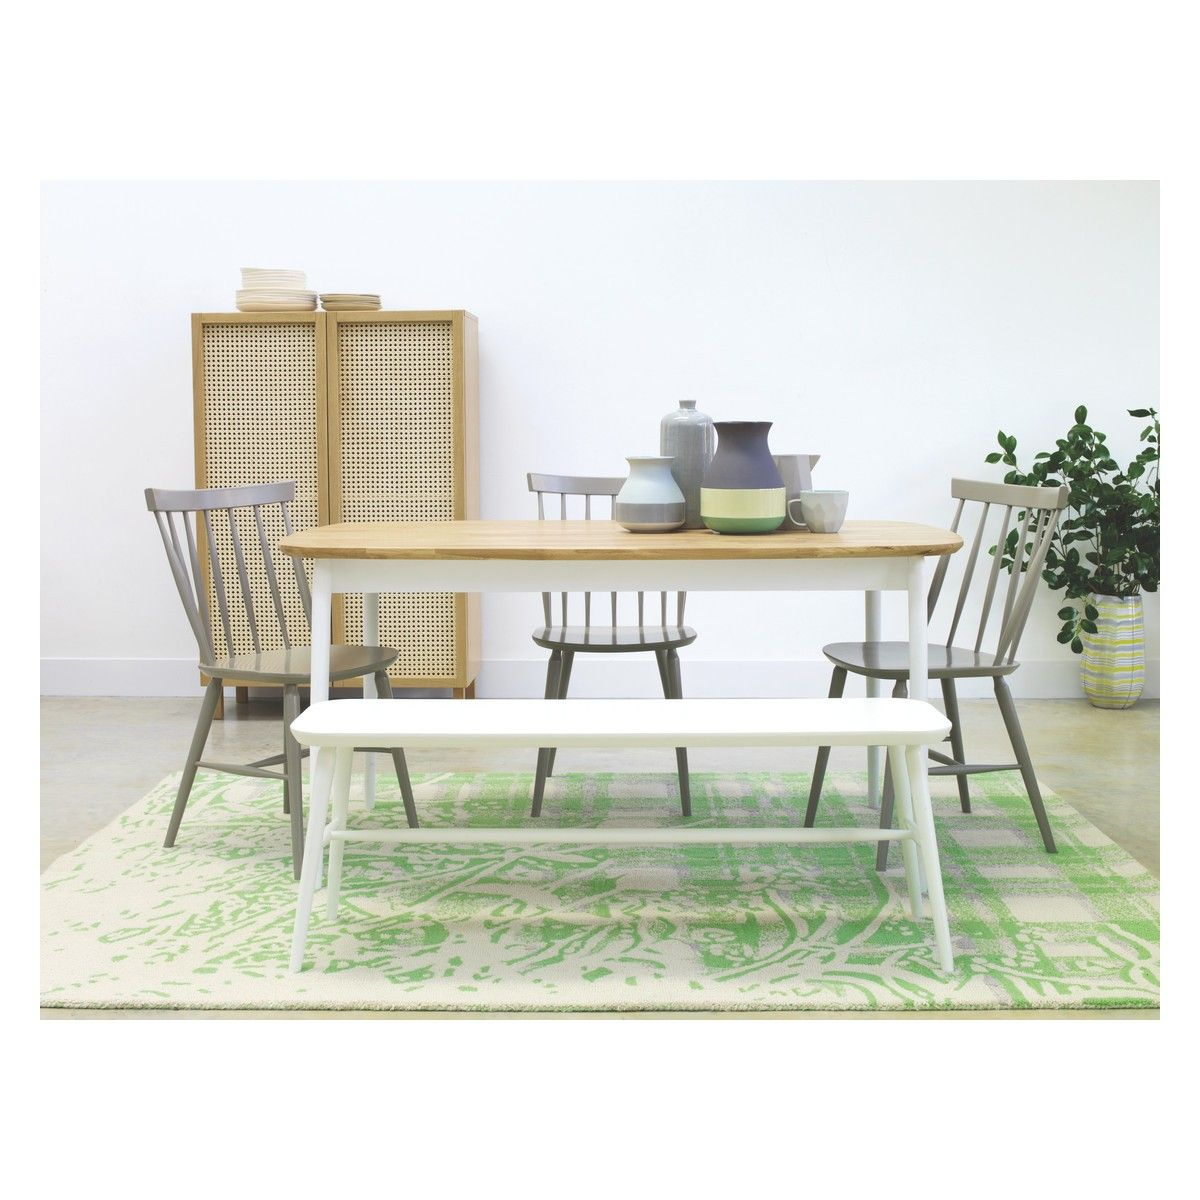 The Talia White Bench Is A Clean Lined Design That Works Equally Well Around Dining Table Or As Standalone Piece In Hallway Bedroom